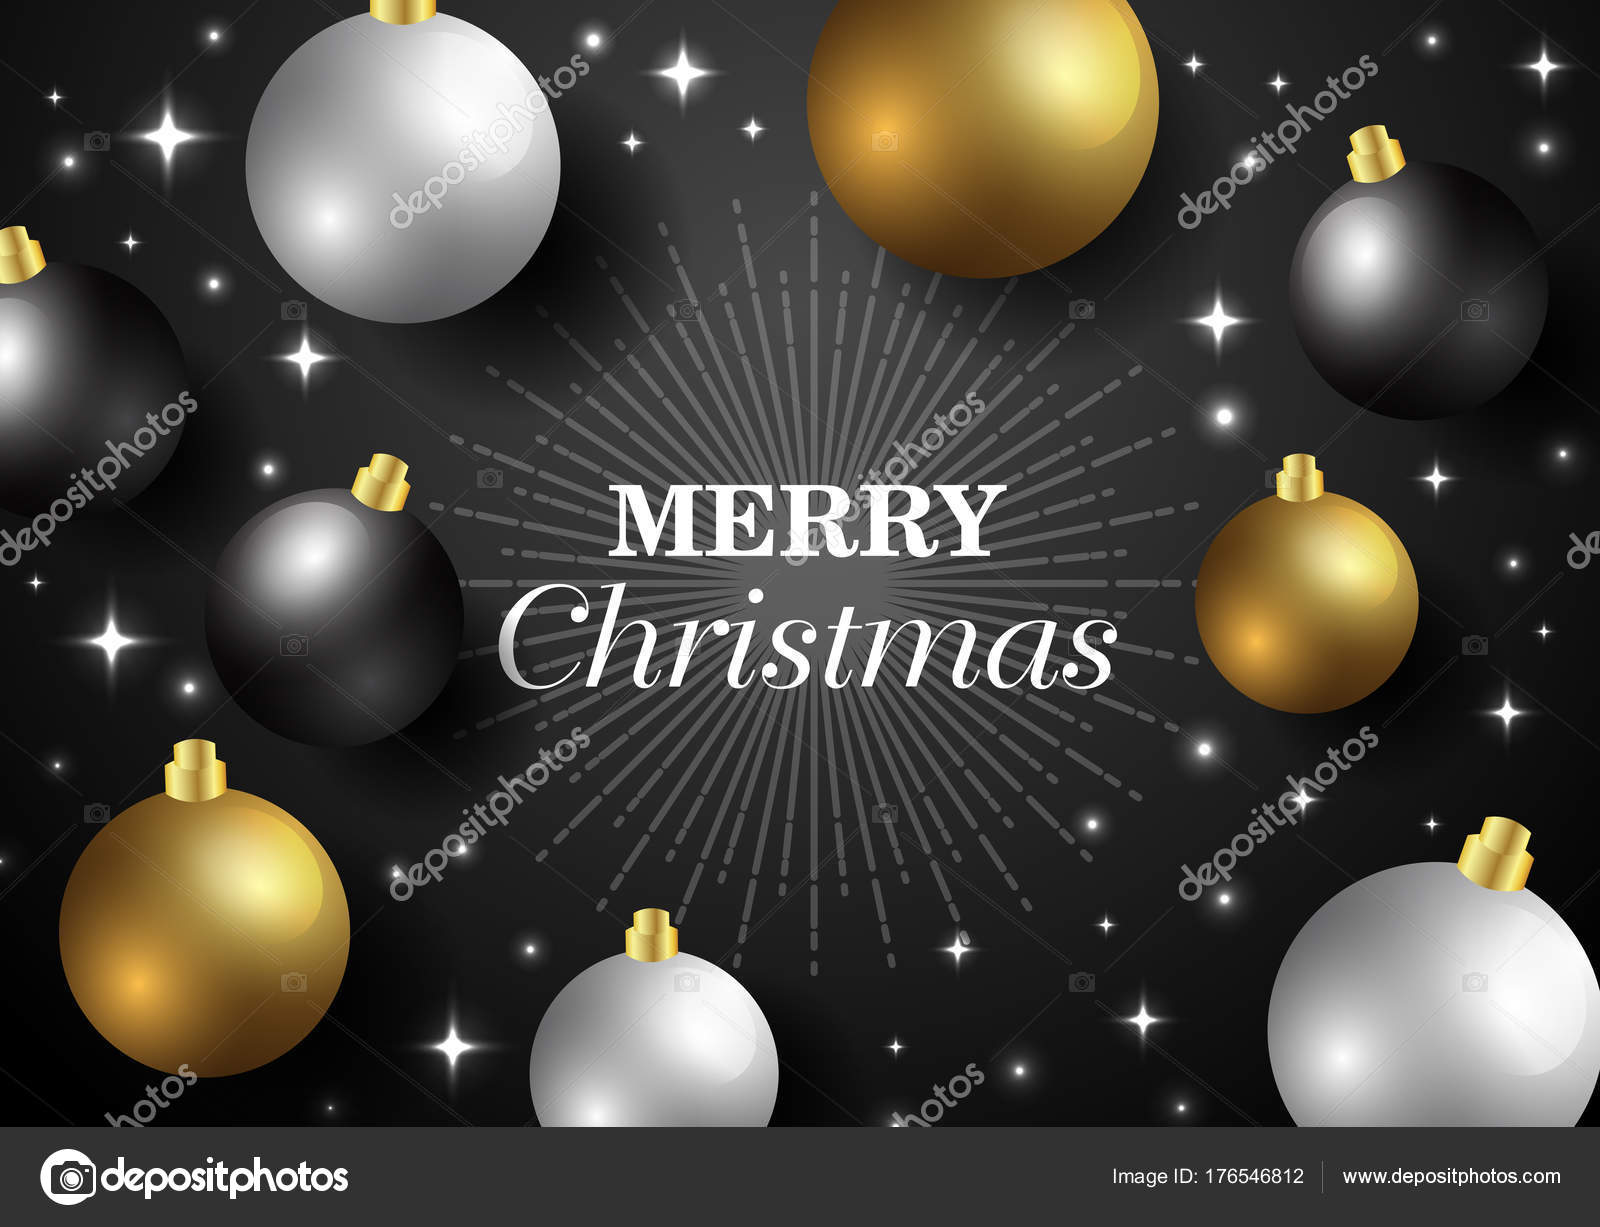 merry christmasnew year card and glitter decoration black and gold background with christmas